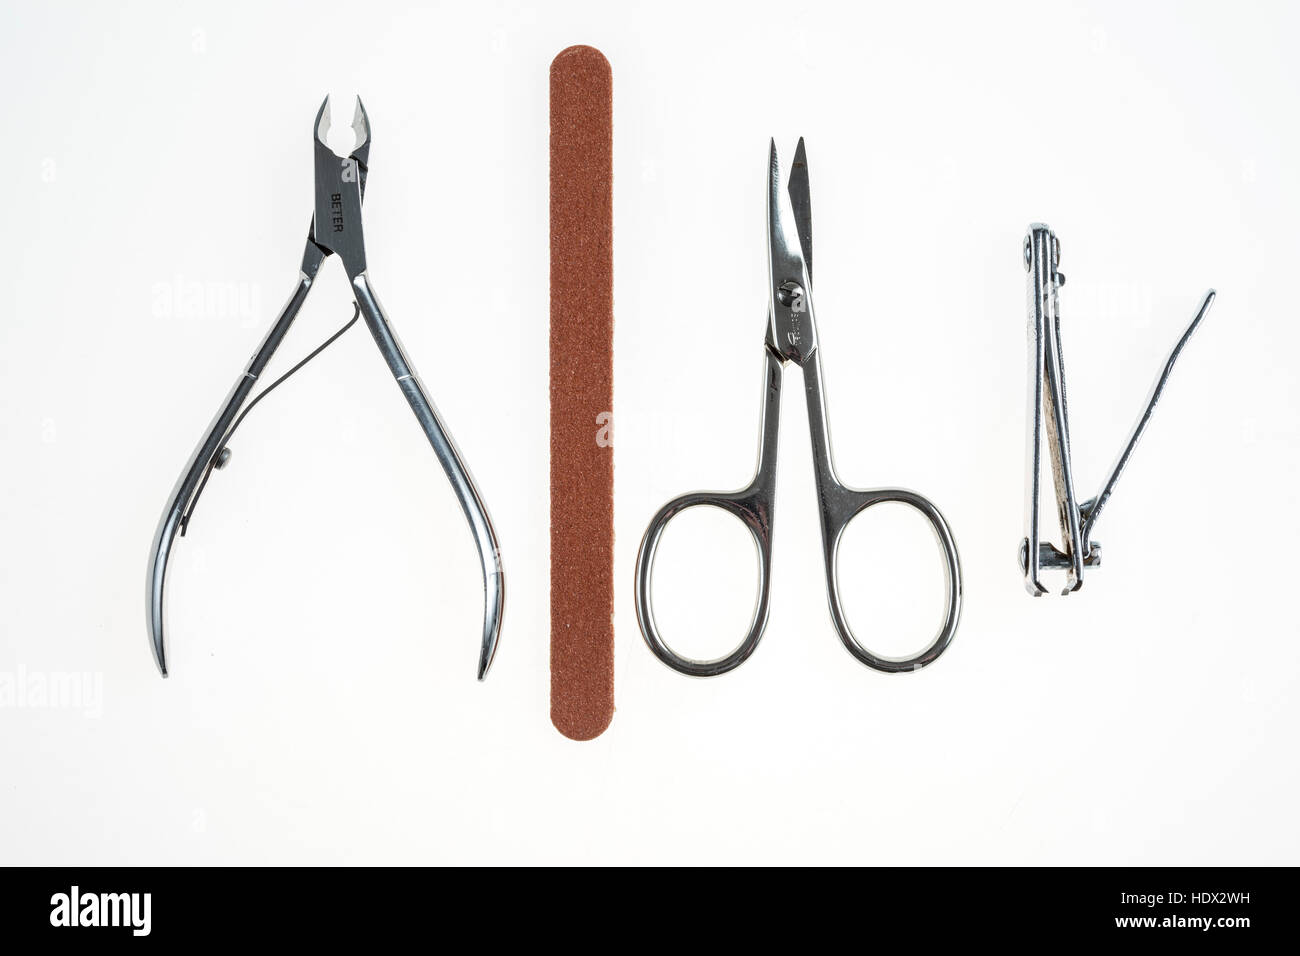 Nail Care Tools Clippers Scissors Nippers Files